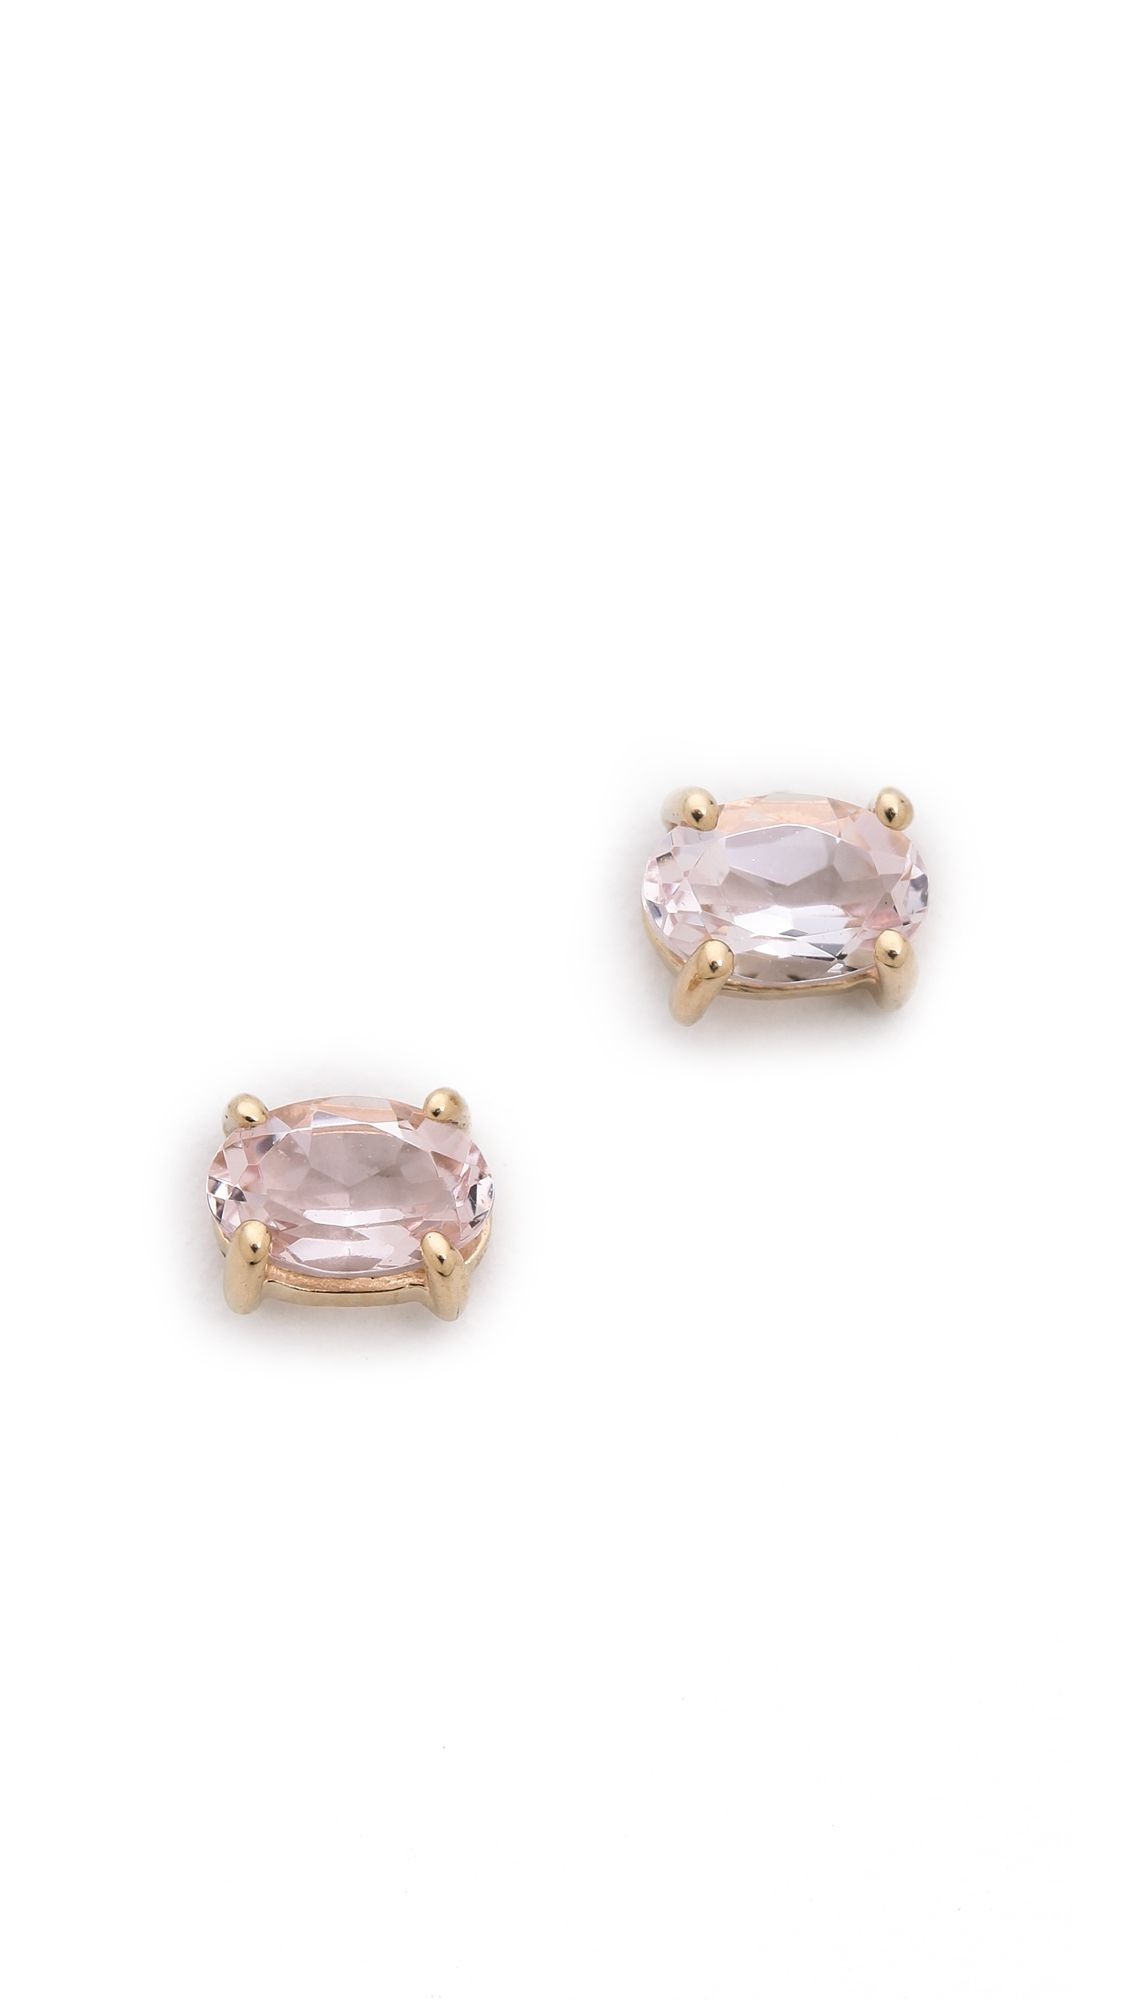 earring products jewellery studs gold sale gemstone stud morganite attachments new for unique wave attachment earrings diamond pink